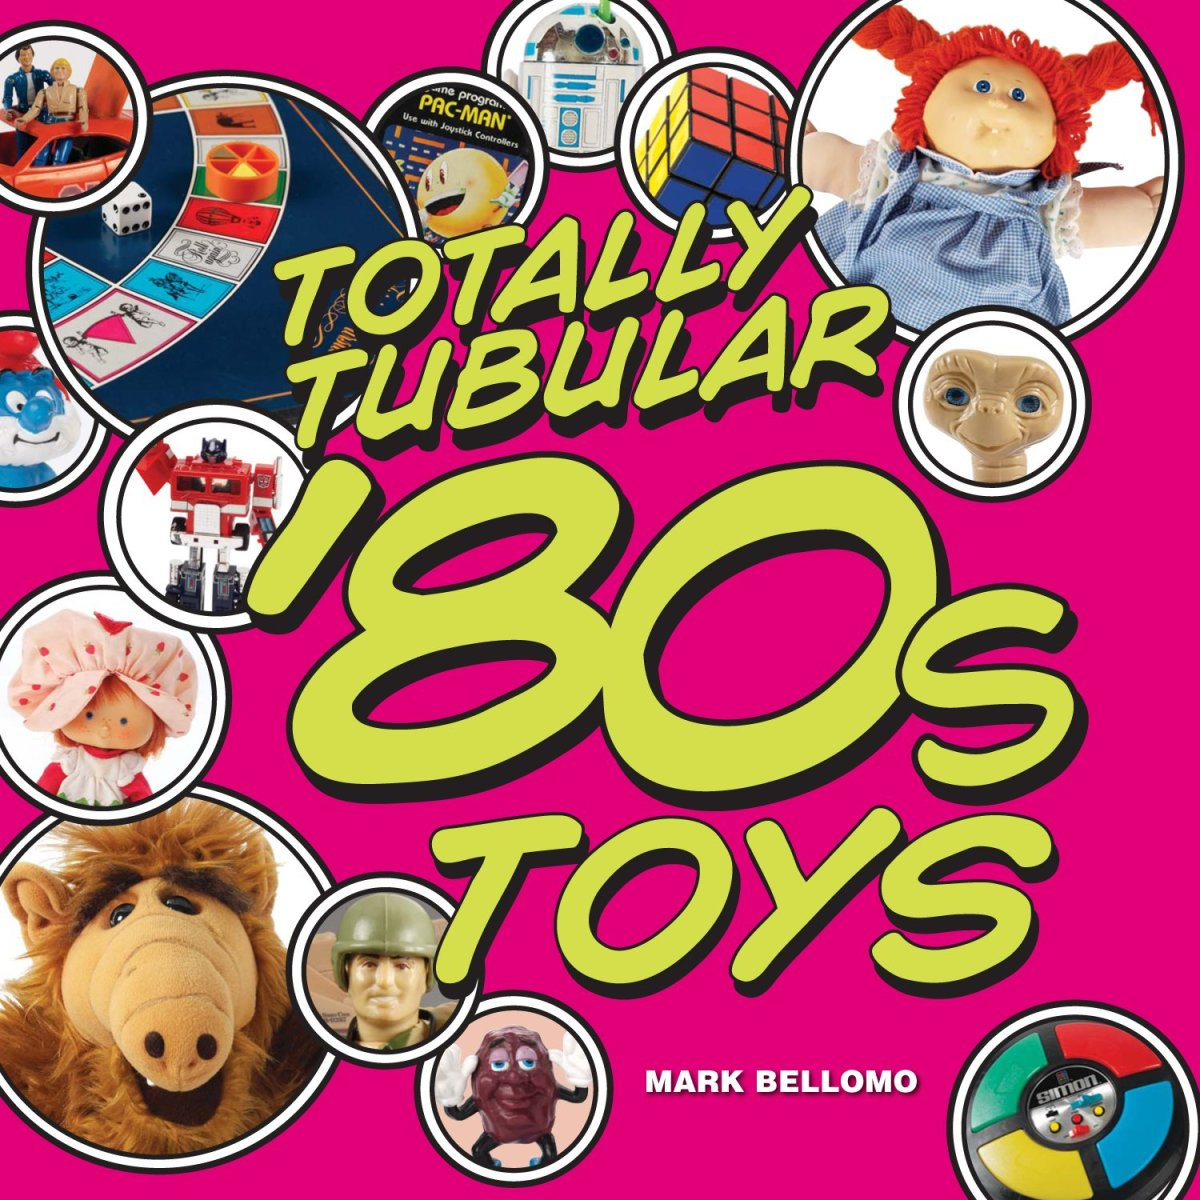 Mark Bellomo is the author of Totally Tubular '80s Toys that covers all of the super rad toys and bodacious memories of the '80s.